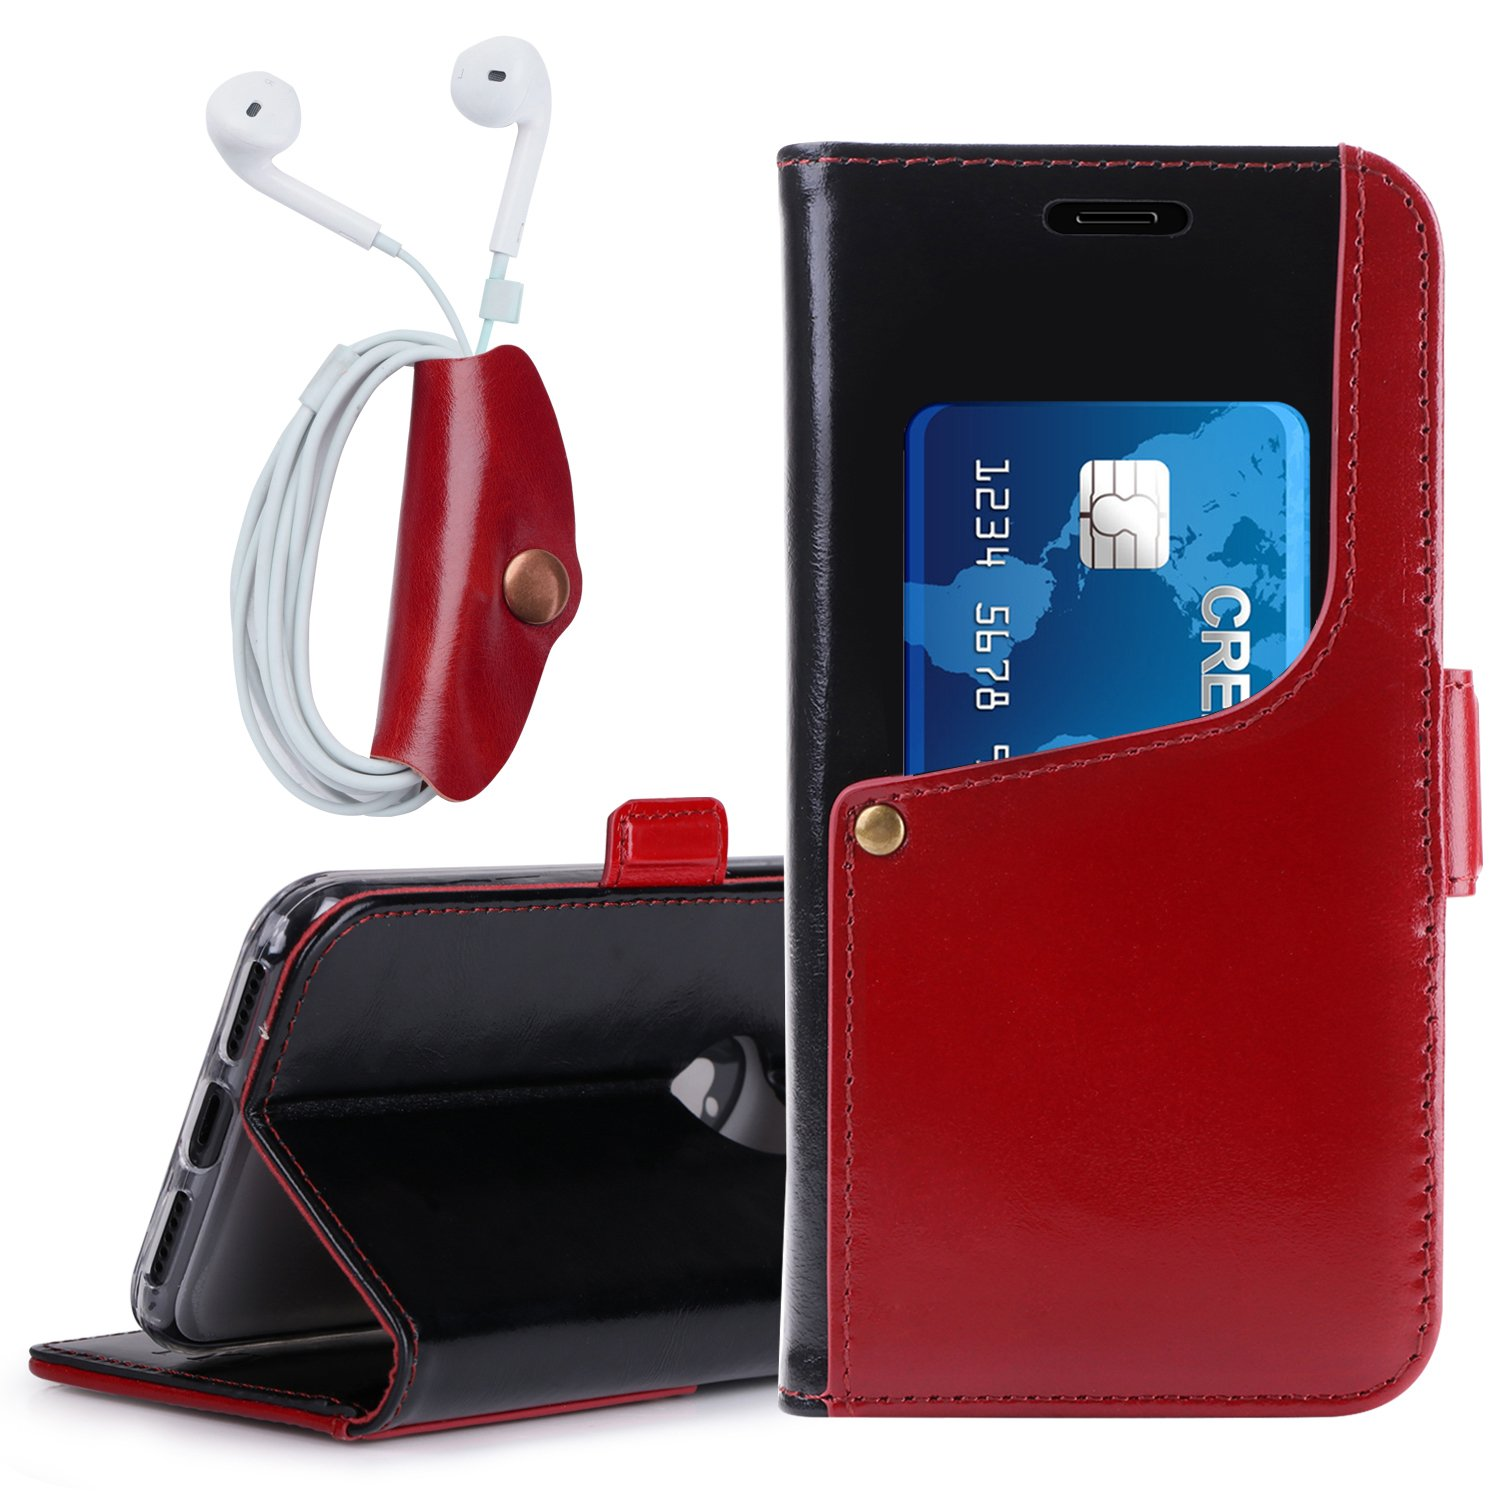 FYY Case for iPhone X, Luxurious Genuine Leather Wallet Case with Kickstand Function for iPhone X Black and Wine Red